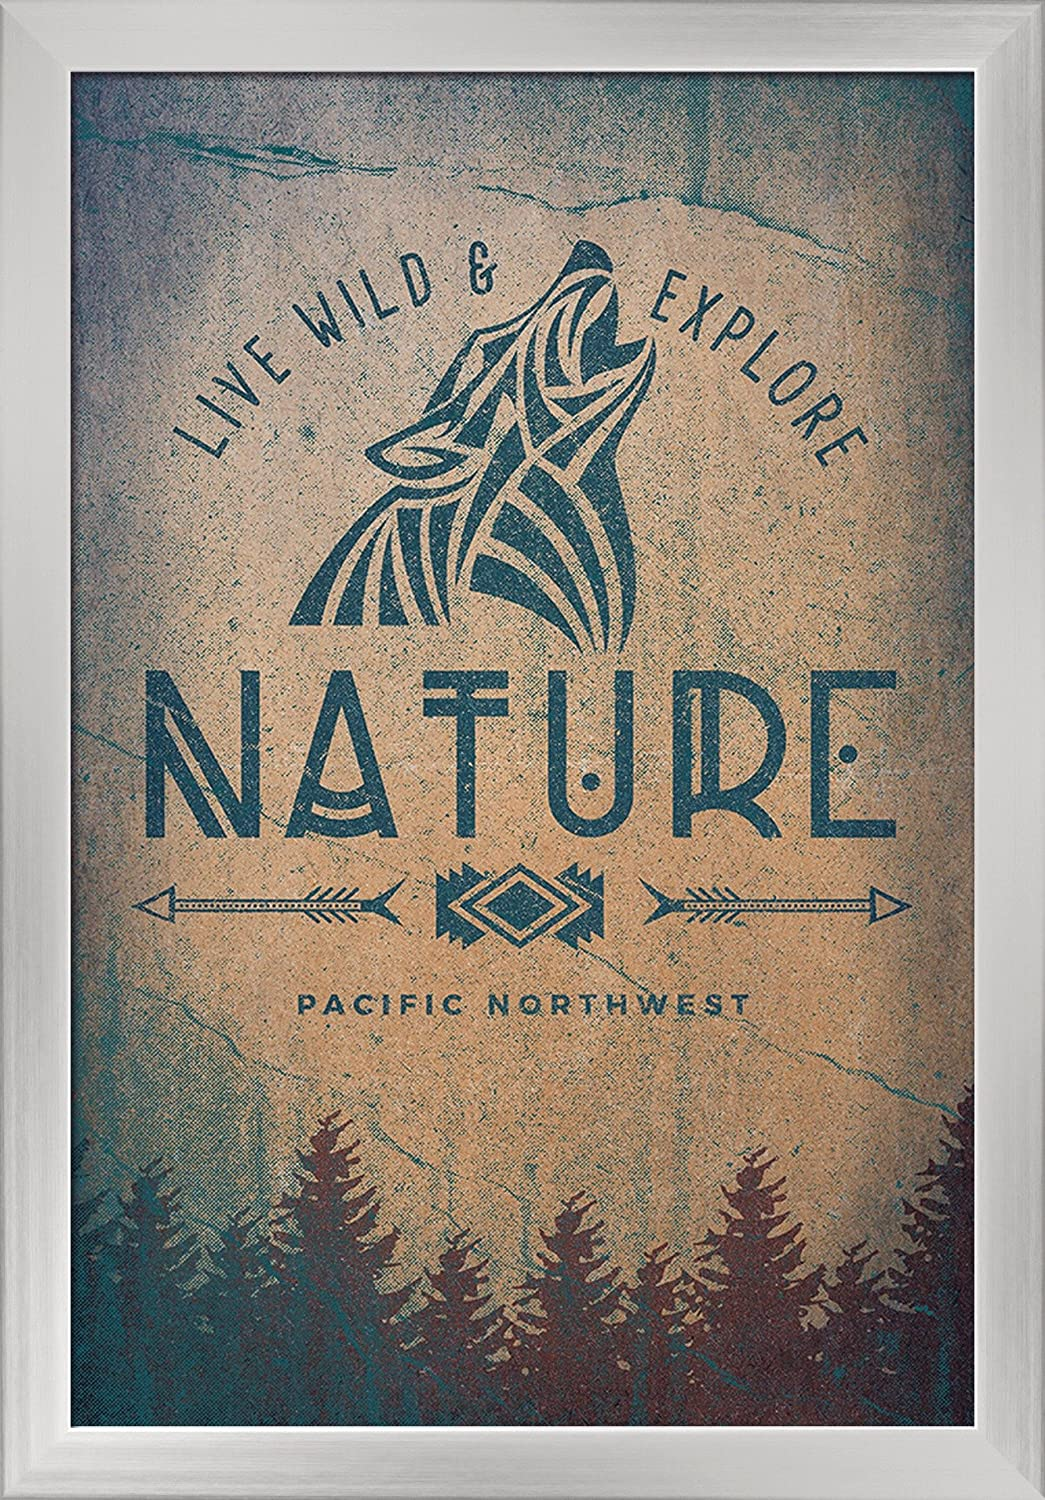 Wolf Howling Pacific Northwest 24x36 Giclee Art Print, Gallery Framed, Silver Wood Live Wild and Explore Nature